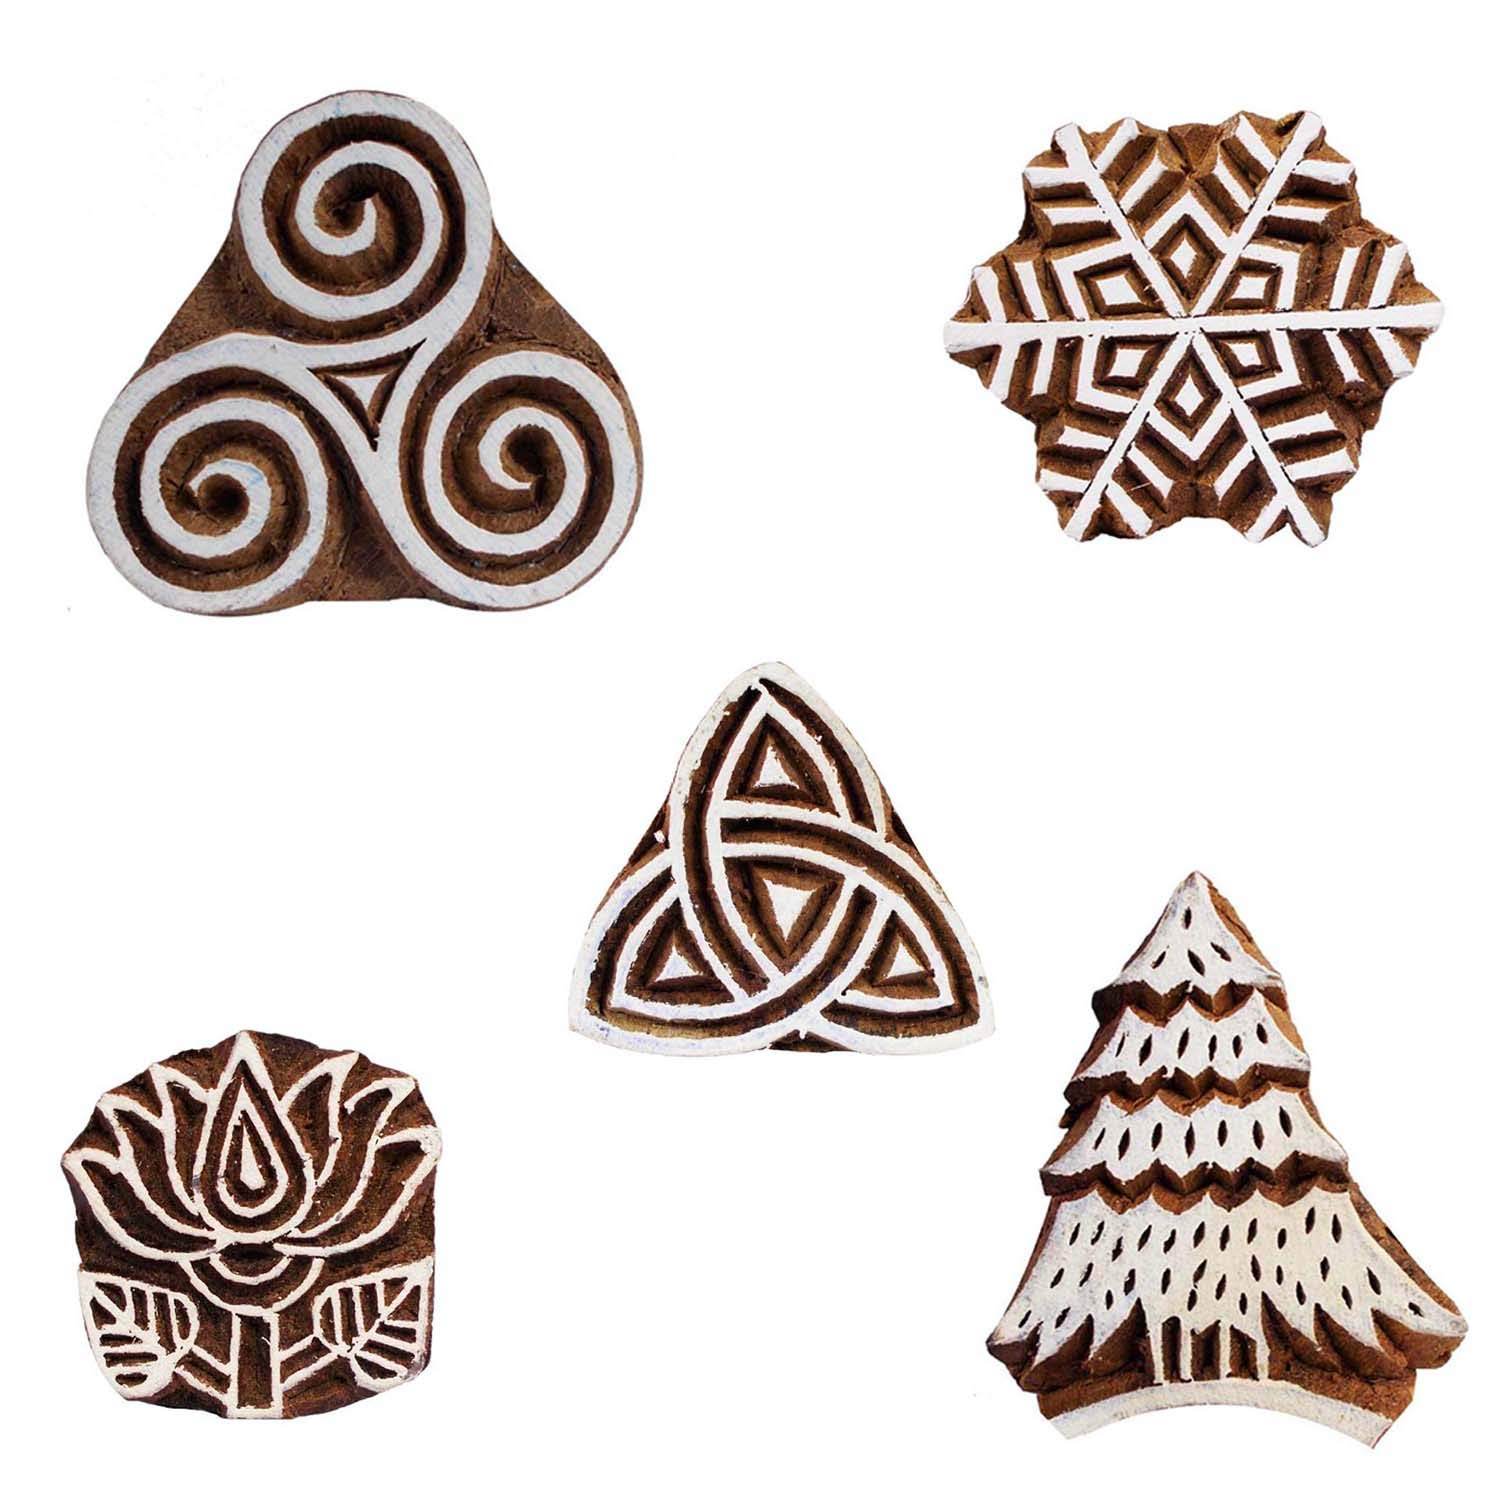 Textile Printing Block Wooden Floral, Christmas Tree and Geometric Triangle Clay Potter Craft Scrapbook Stamps Pack of 5 by CraftyArt